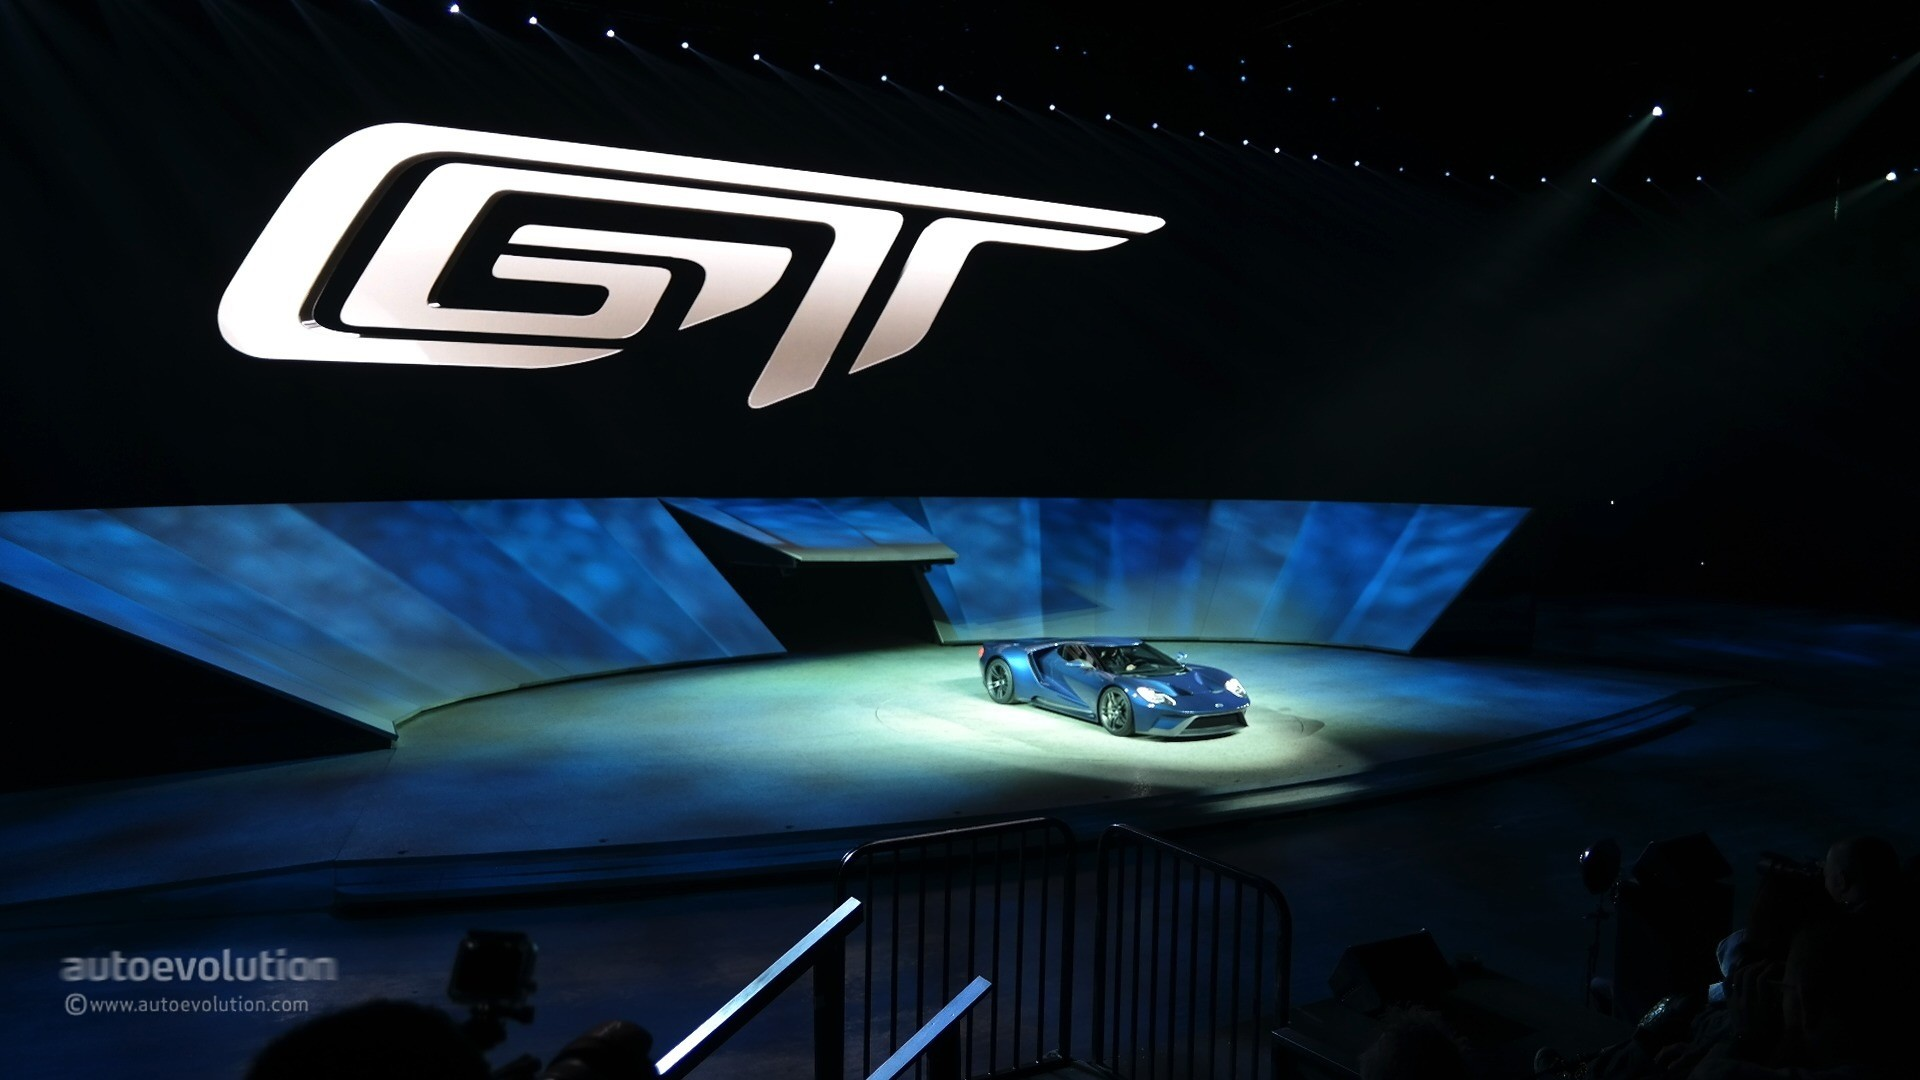 2017 Ford Gt Supercar Teased In Forza Motorsport 6 Trailer Video 91616 also P 51D Old Crow 109637609 as well 2016 Shelby Gt350 Mustang Tires To Be Available From June 15 Video Photo Gallery 93828 likewise Awd Ford Focus With Gt R Engine Plans To Race At Pikes Peak 108368 together with 477101 241711961 Original. on 84 mustang engine